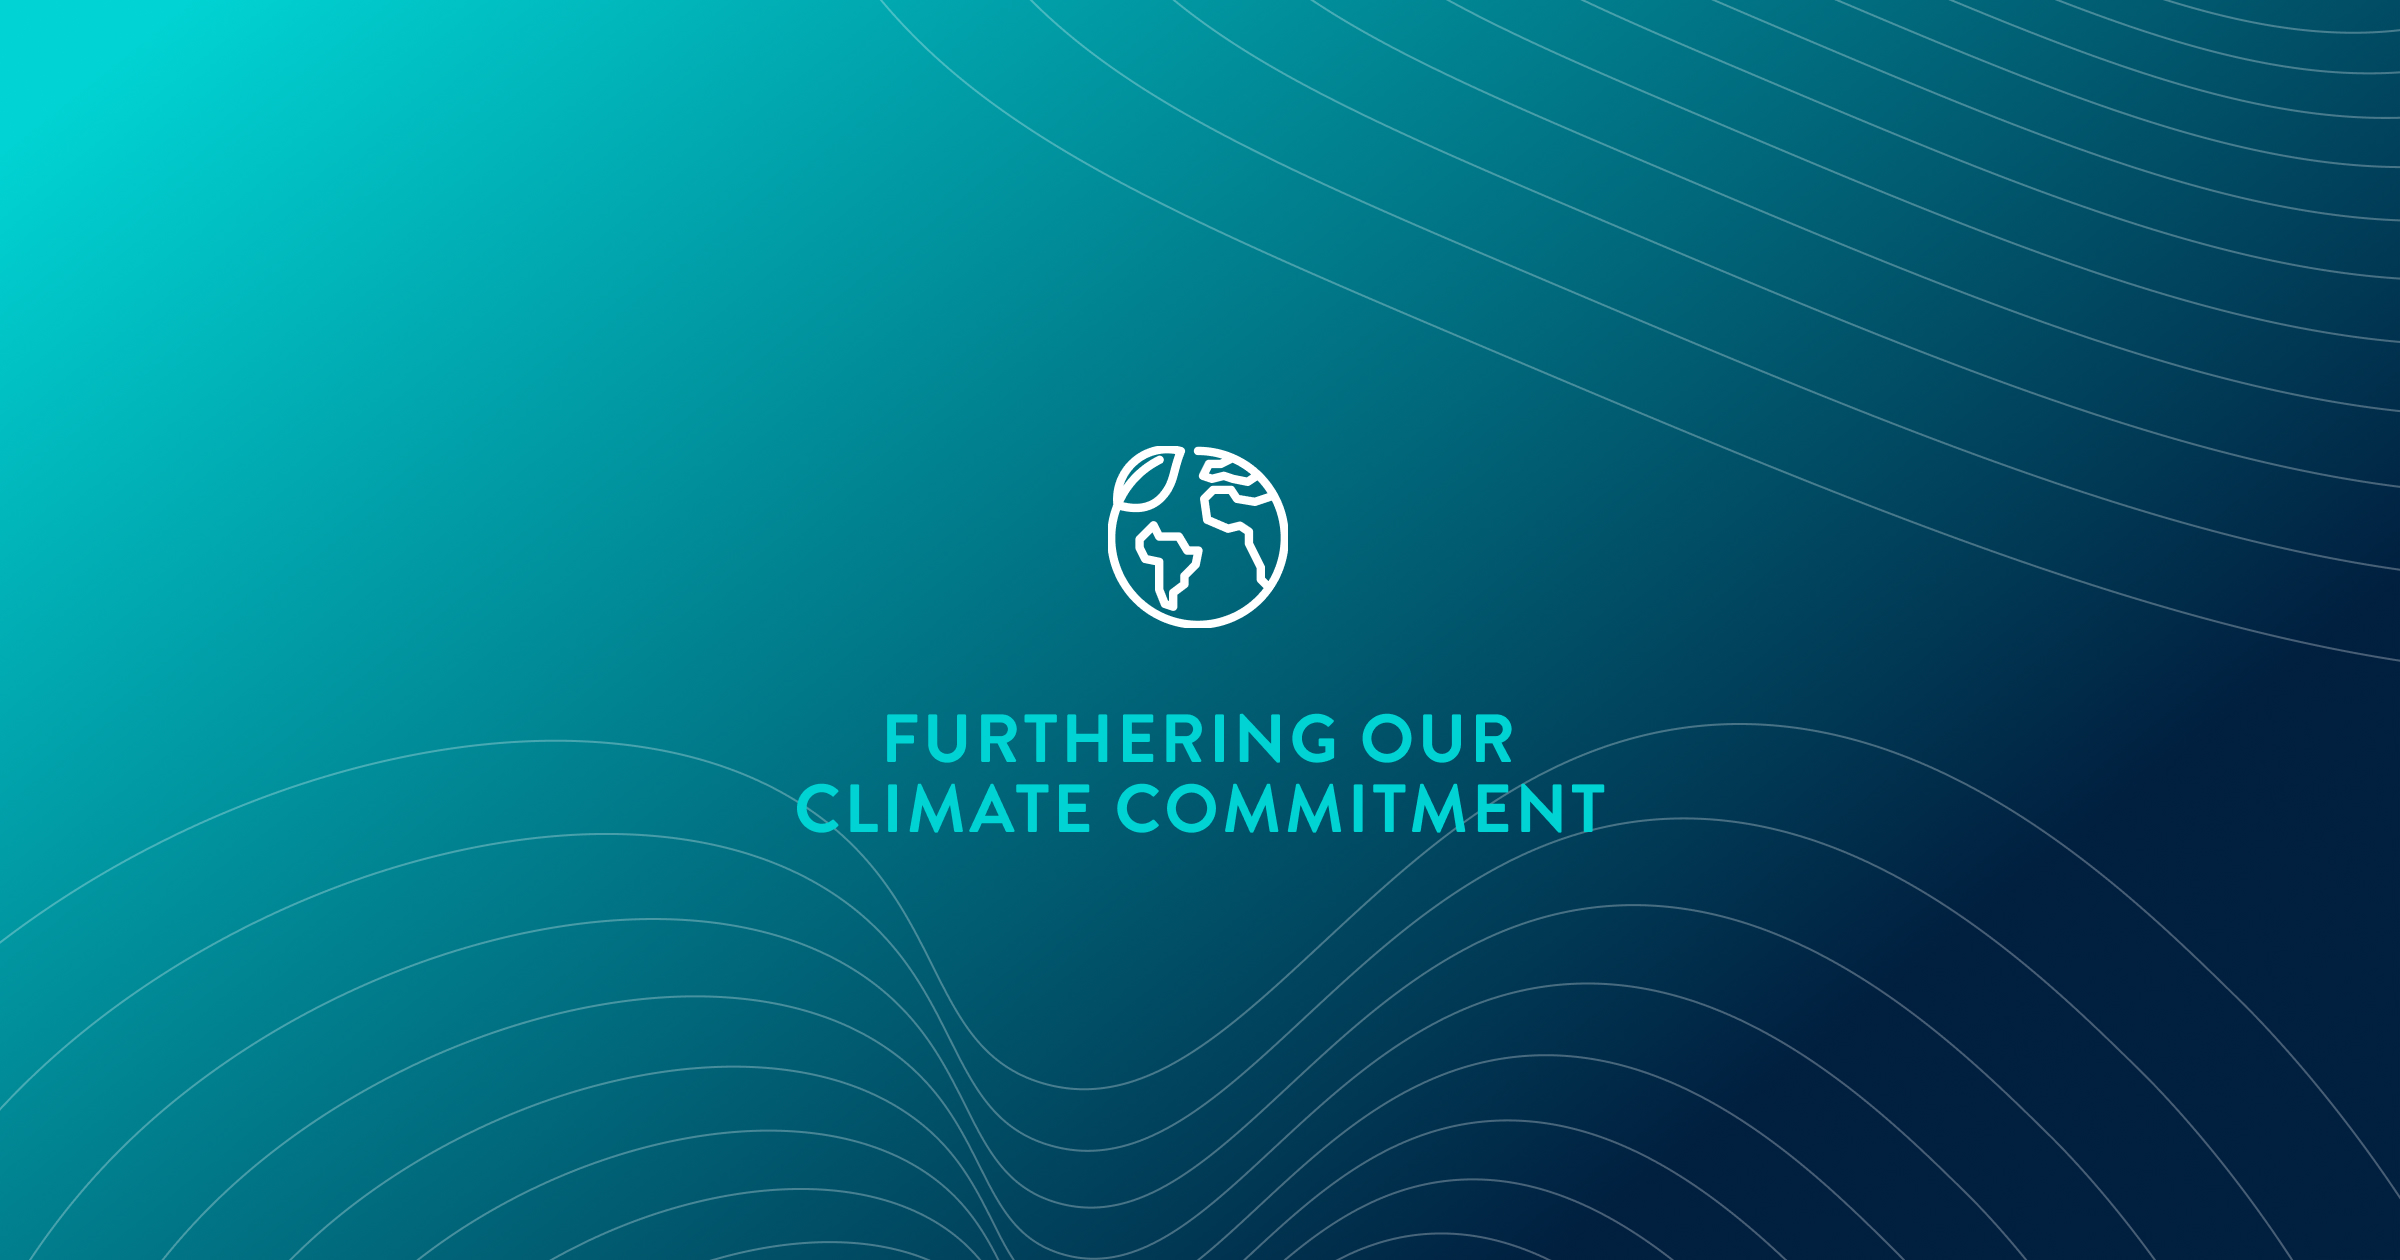 Furthering our Climate Commitment